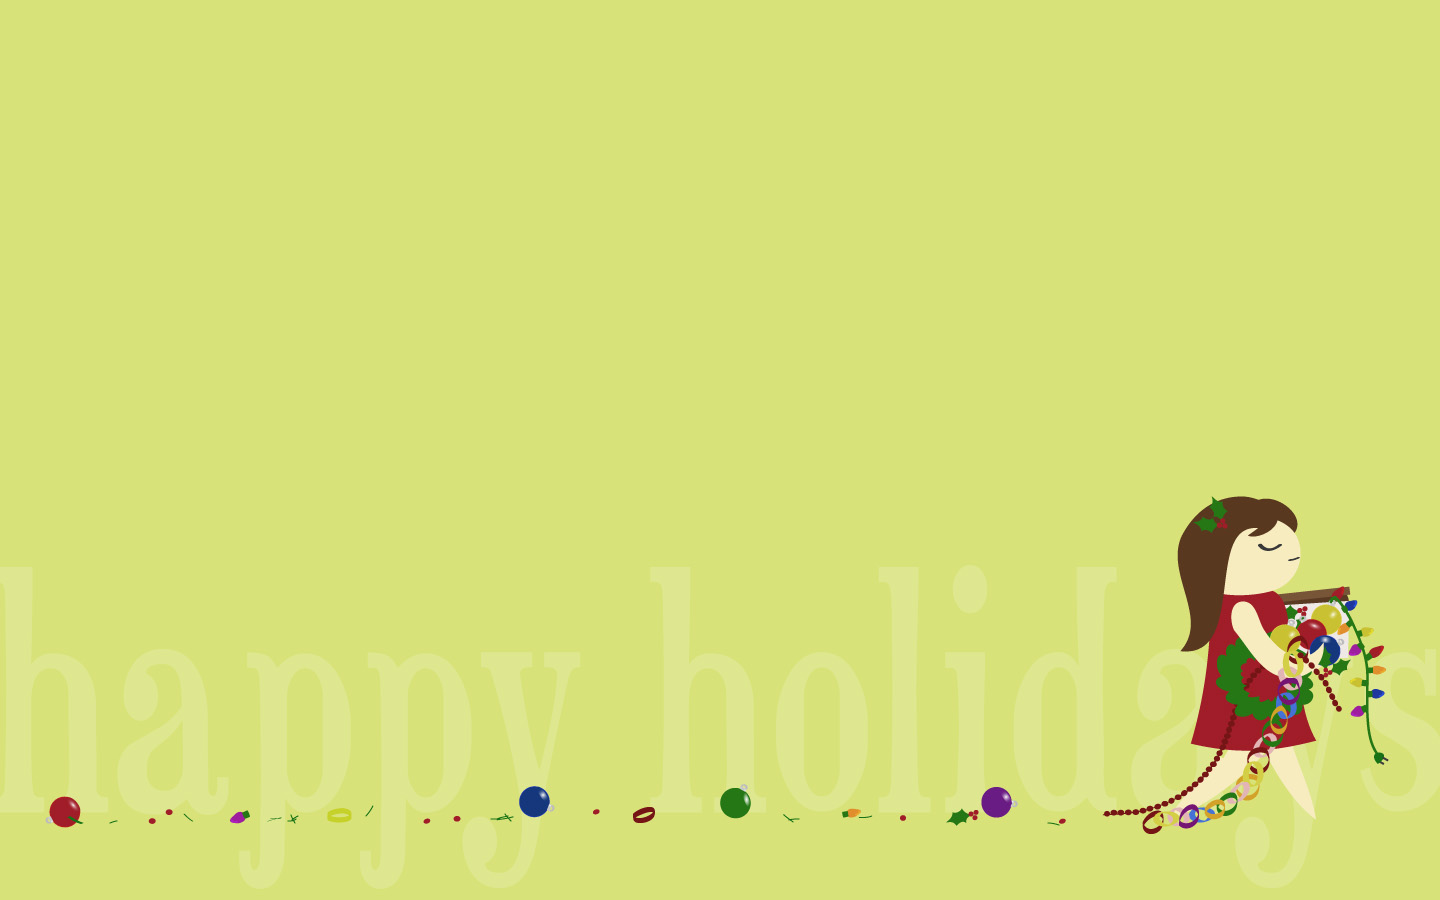 Happy Holidays Christmas Desktop Background Wallpapers And Myspace